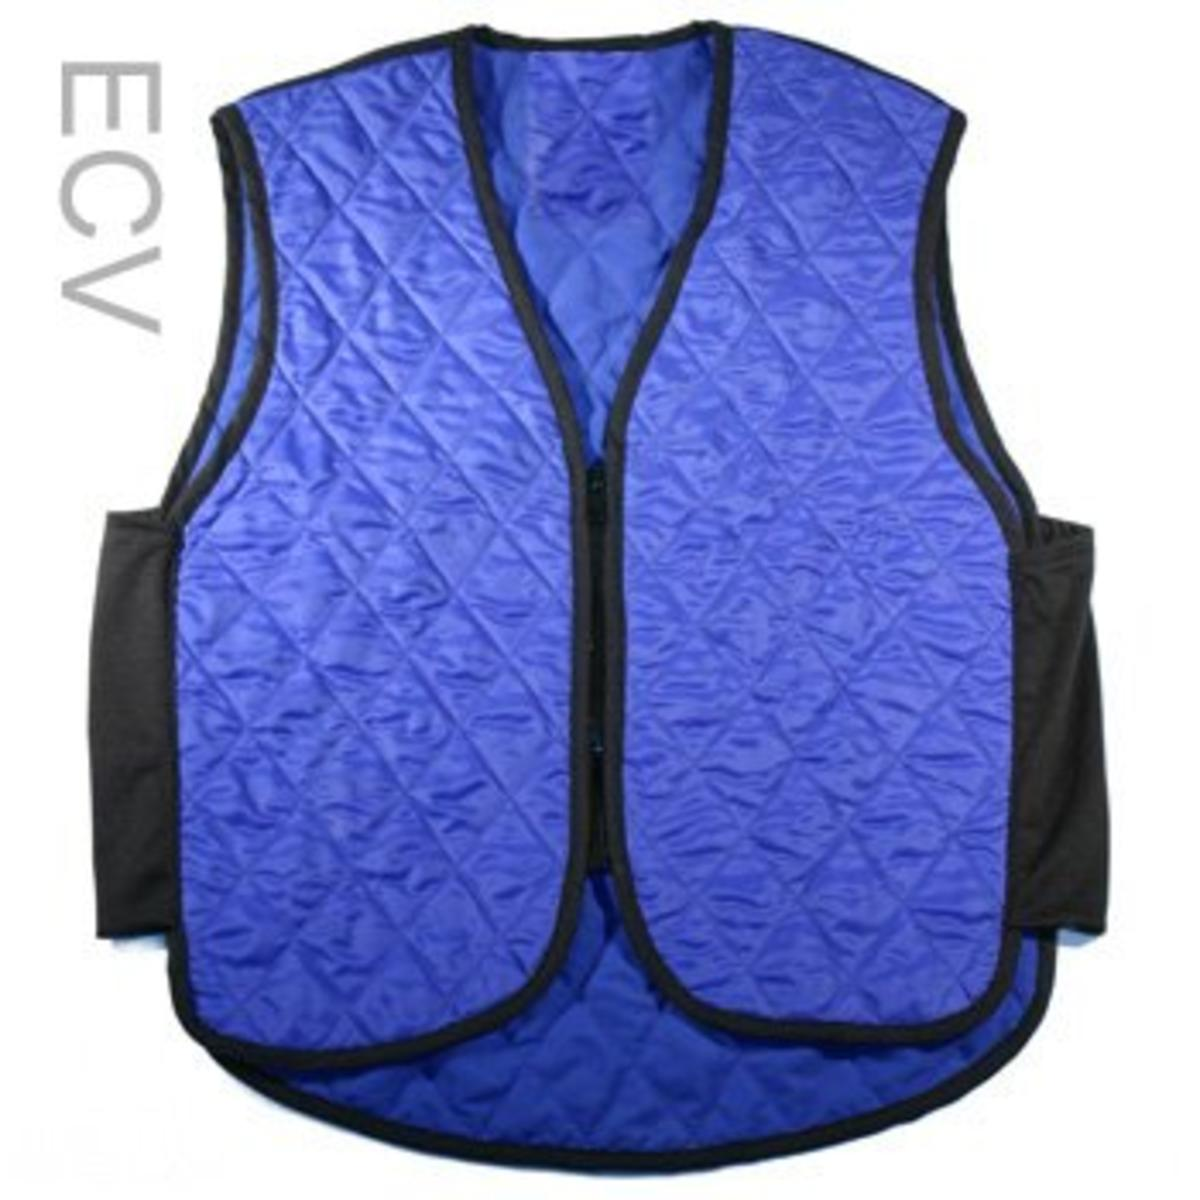 1d65e457f Polar Products Evaporative Cooling Vest - The Warming Store